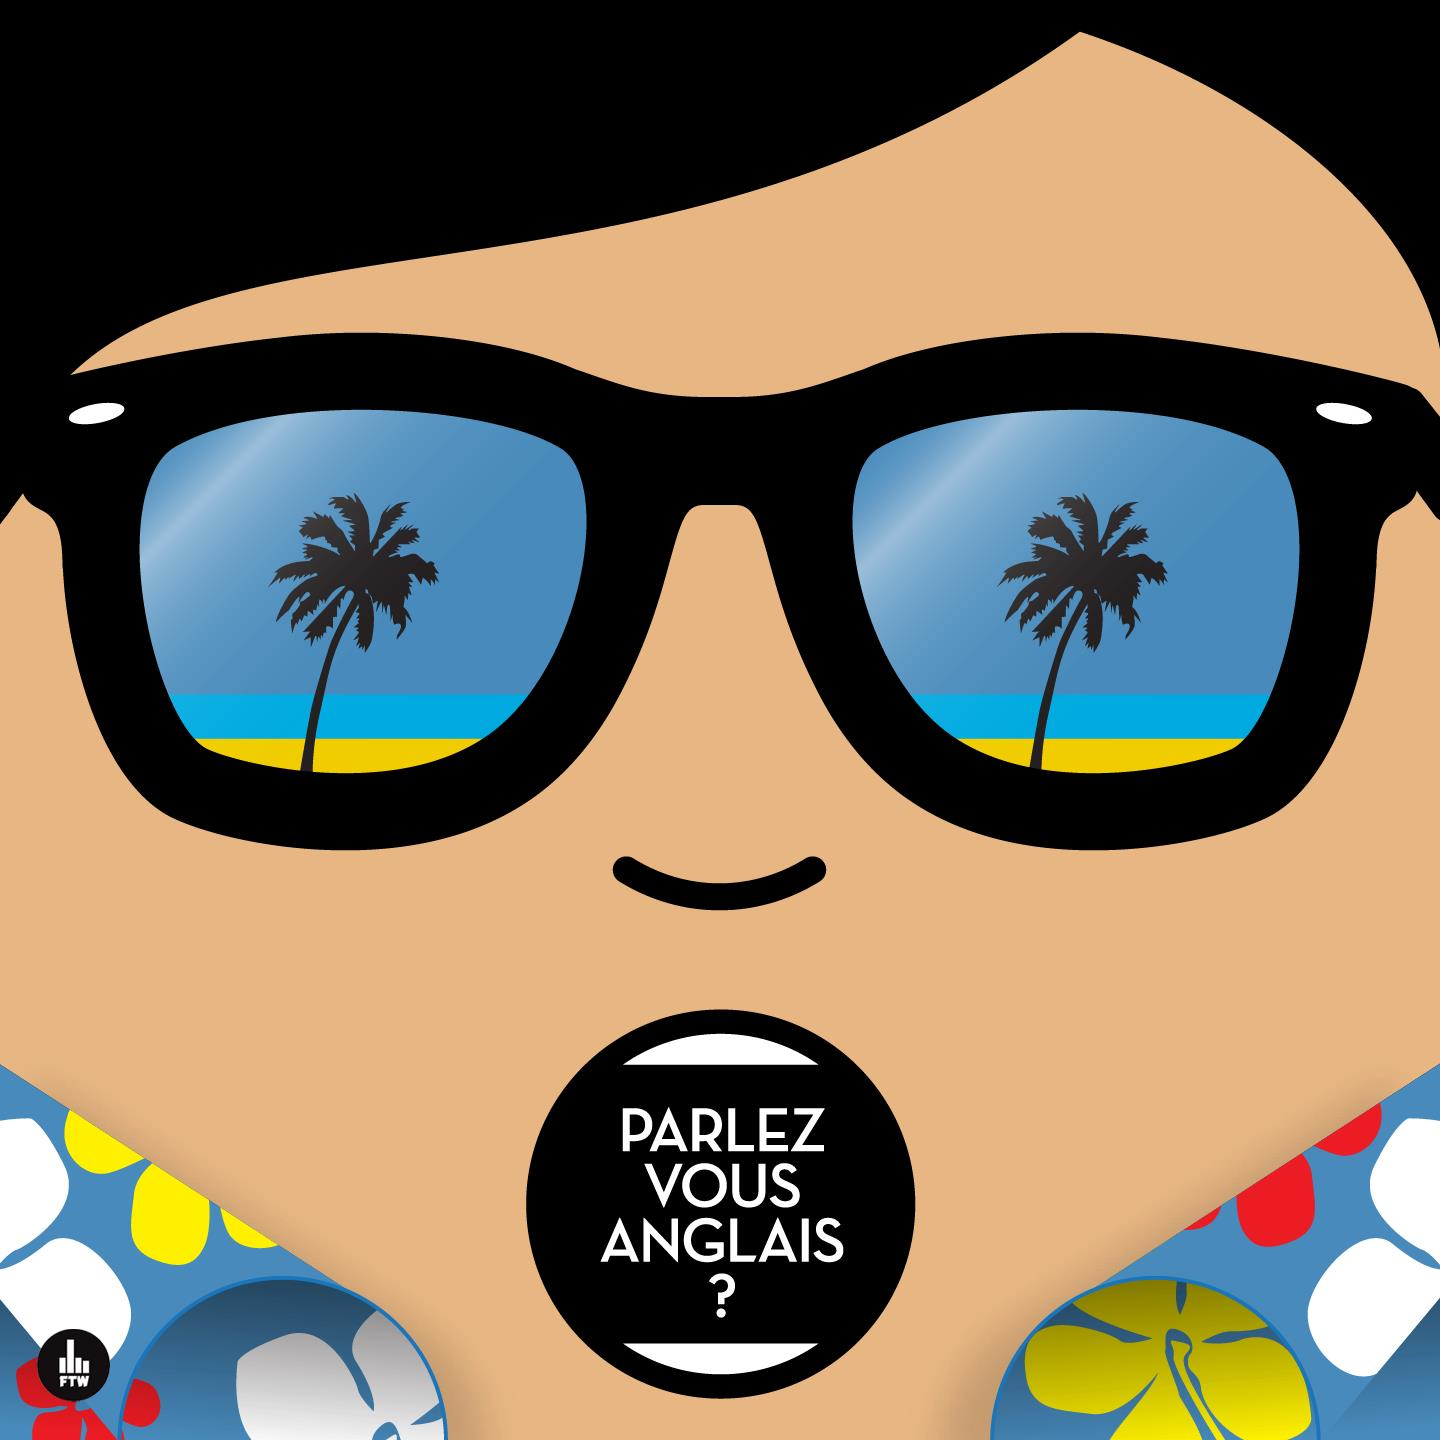 Parlez-vous anglais ? Sunglasses &amp; shirts